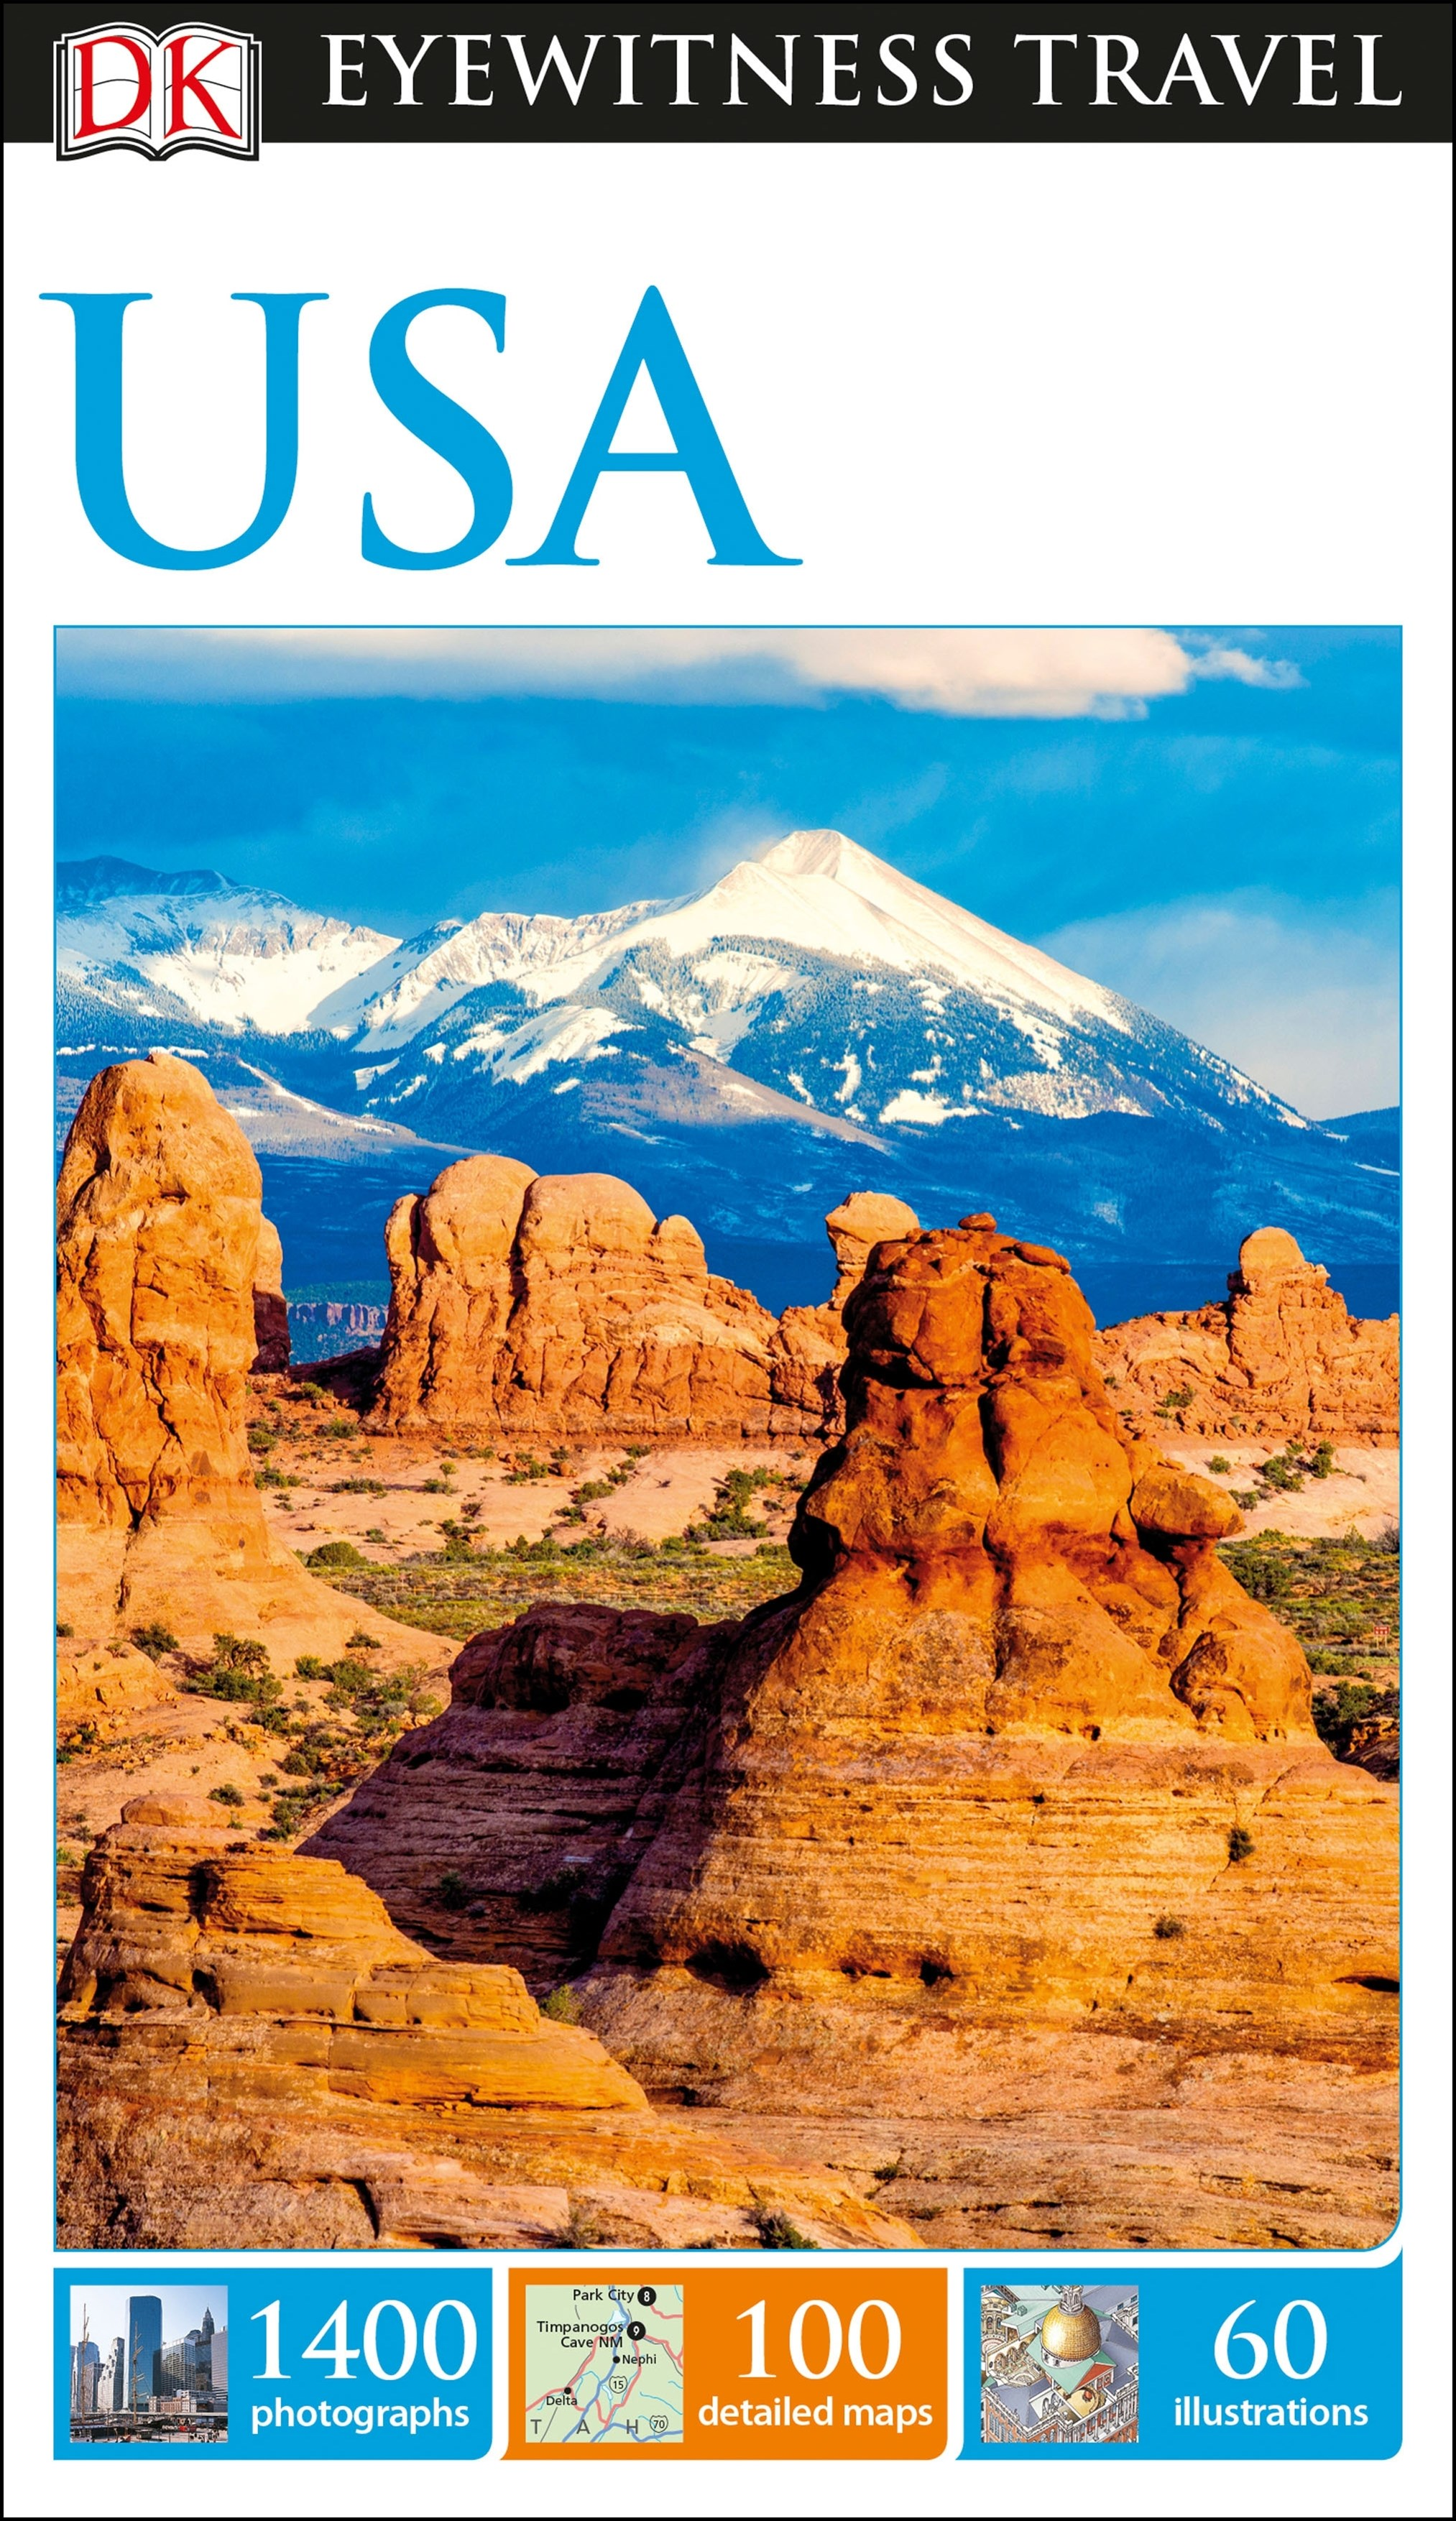 USA: Eyewitness Travel Guide